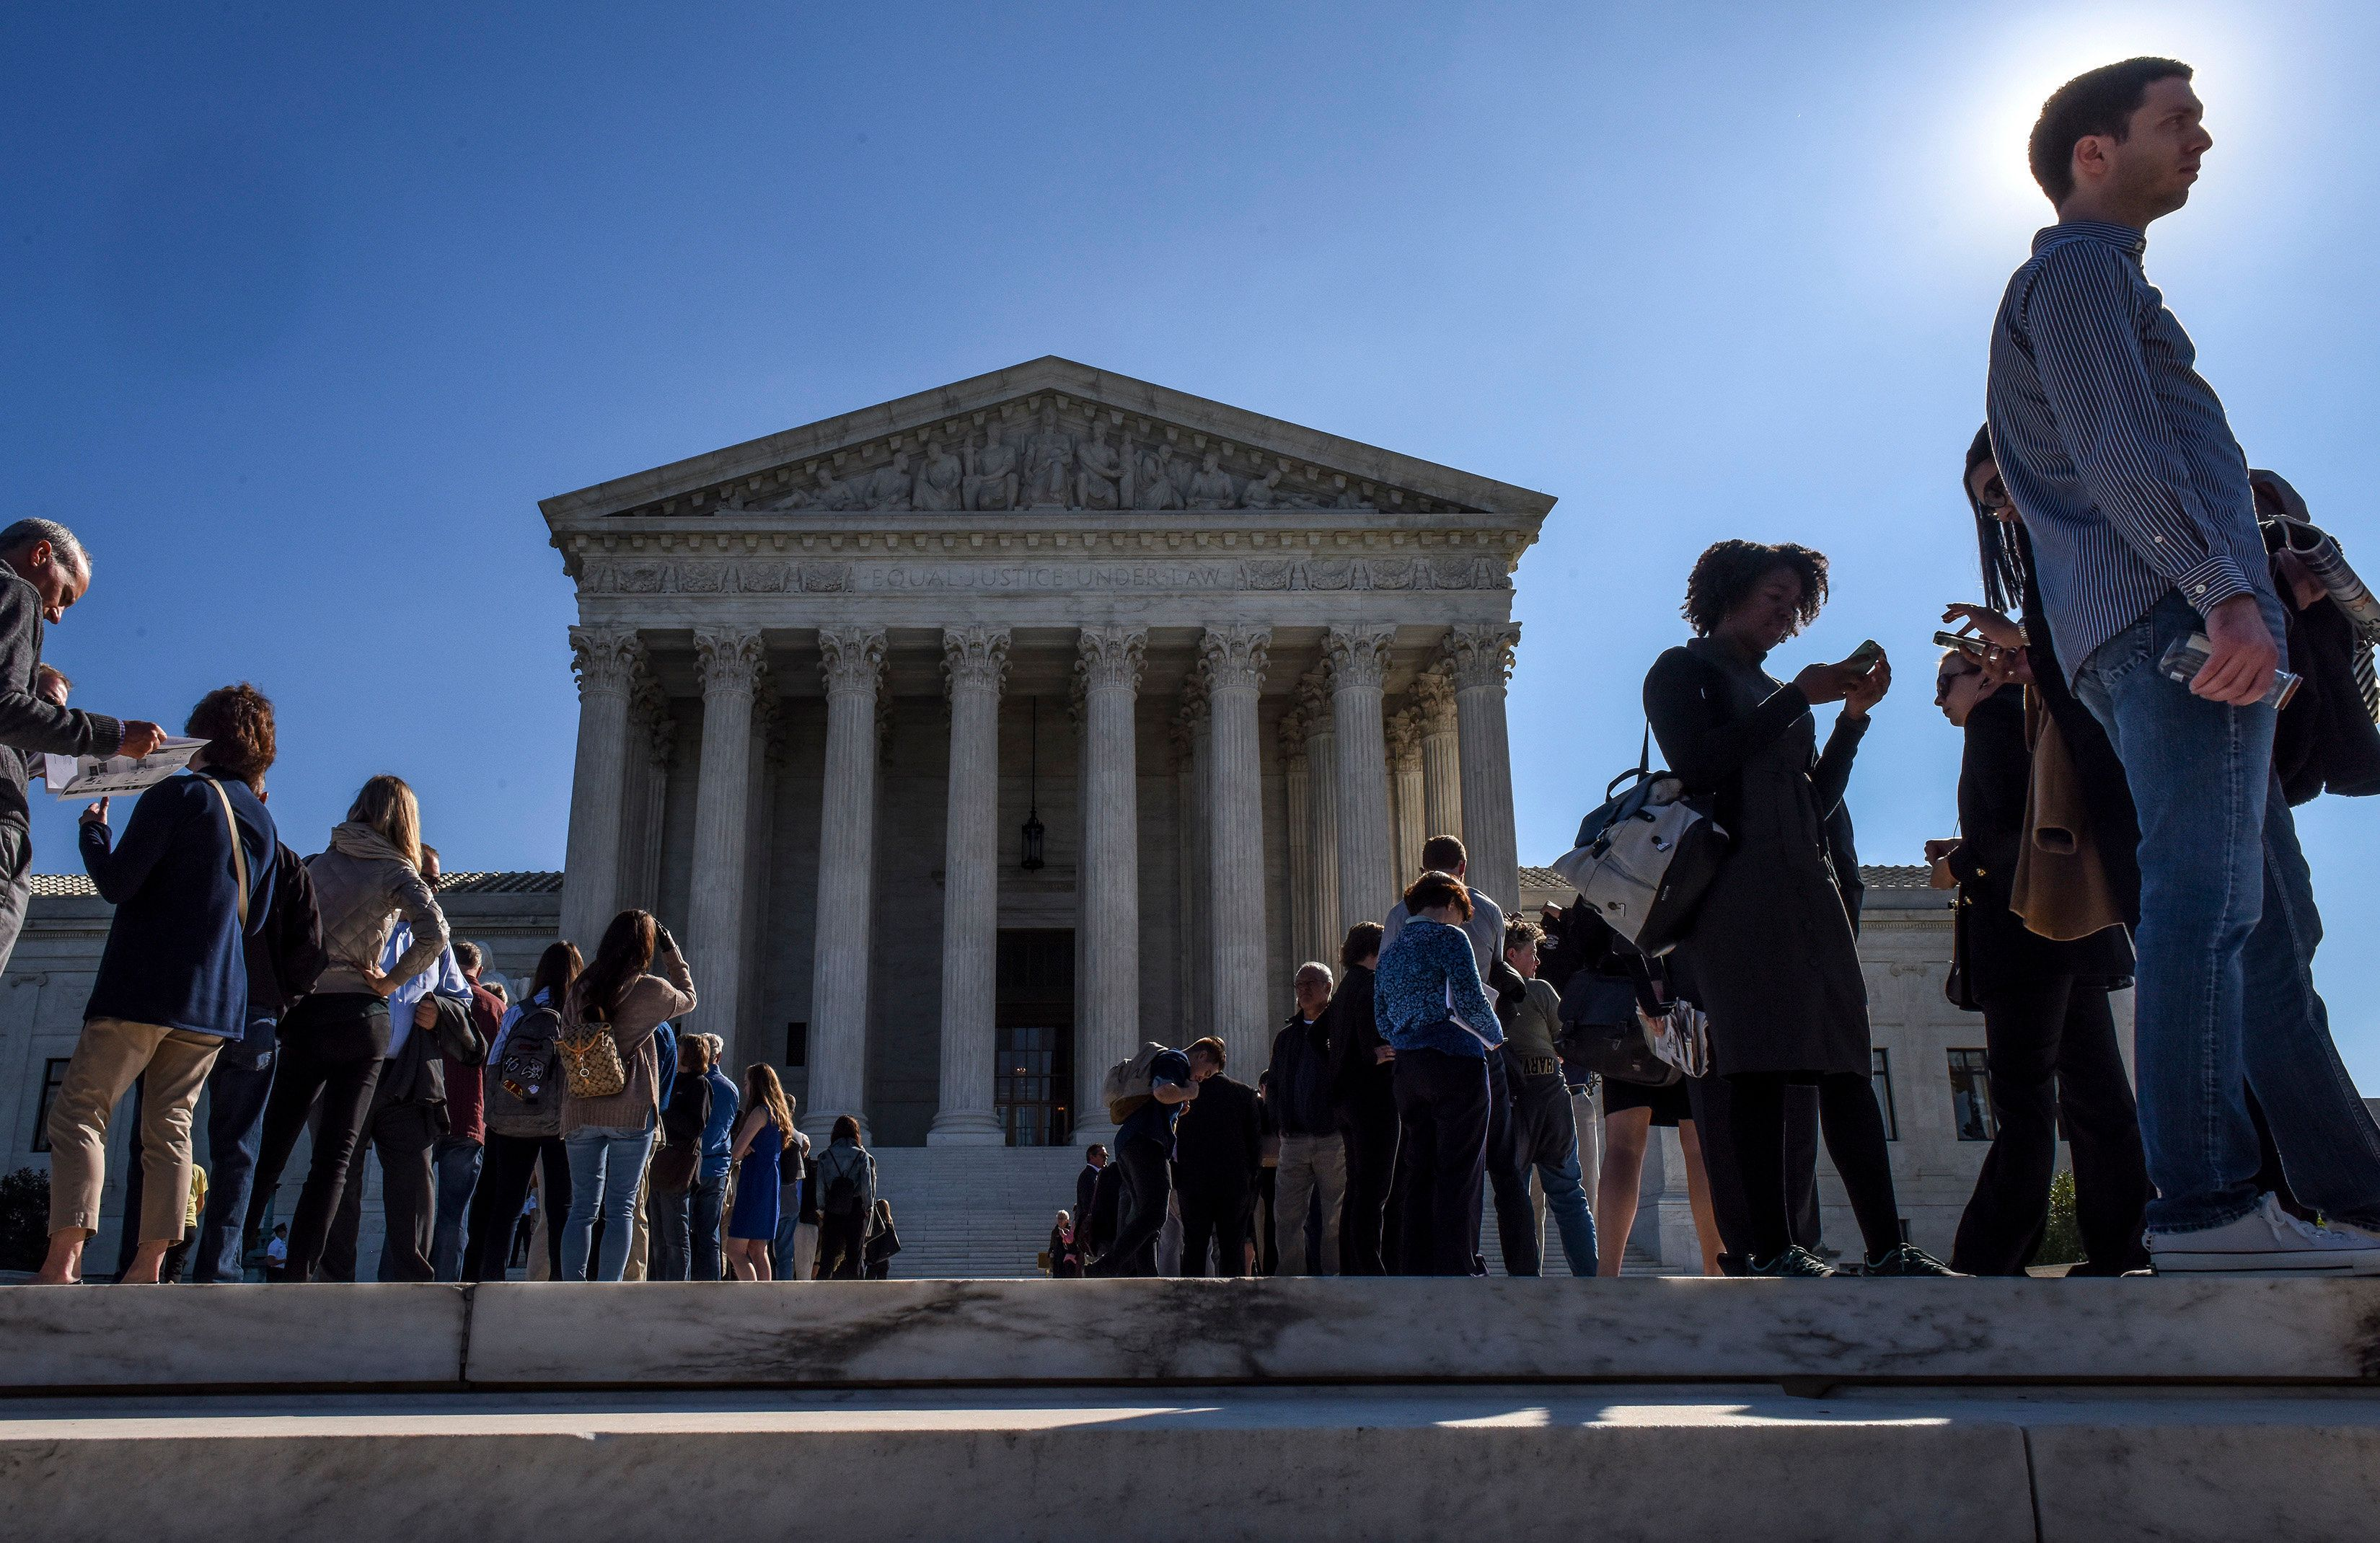 North Carolina GOP Bragged About Gerrymandering. It Still May Not Be Enough To Convince SCOTUS.